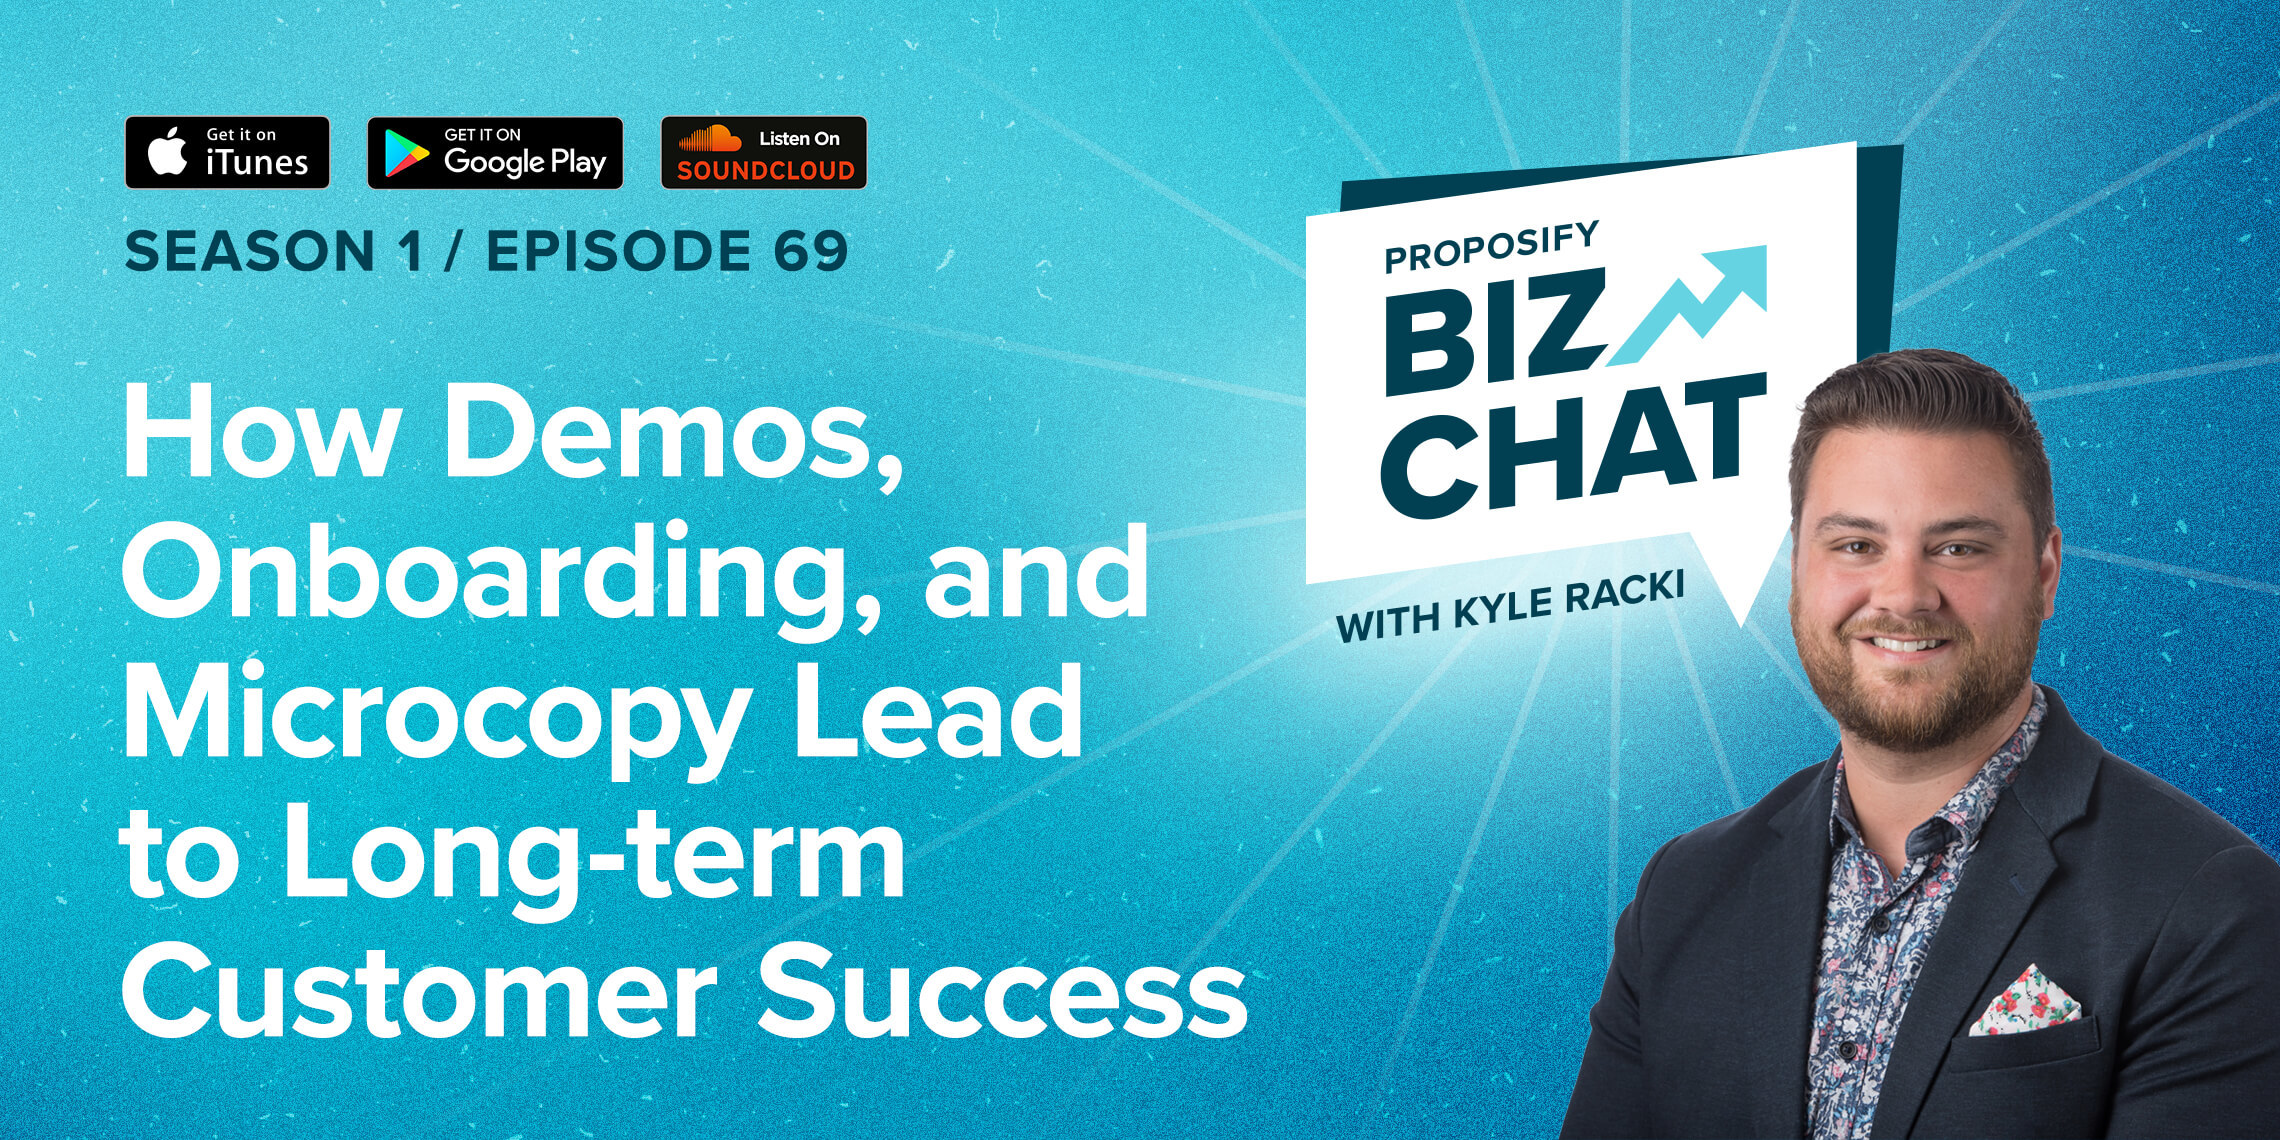 How Demos, Onboarding, and Microcopy Lead to Long-term Customer Success